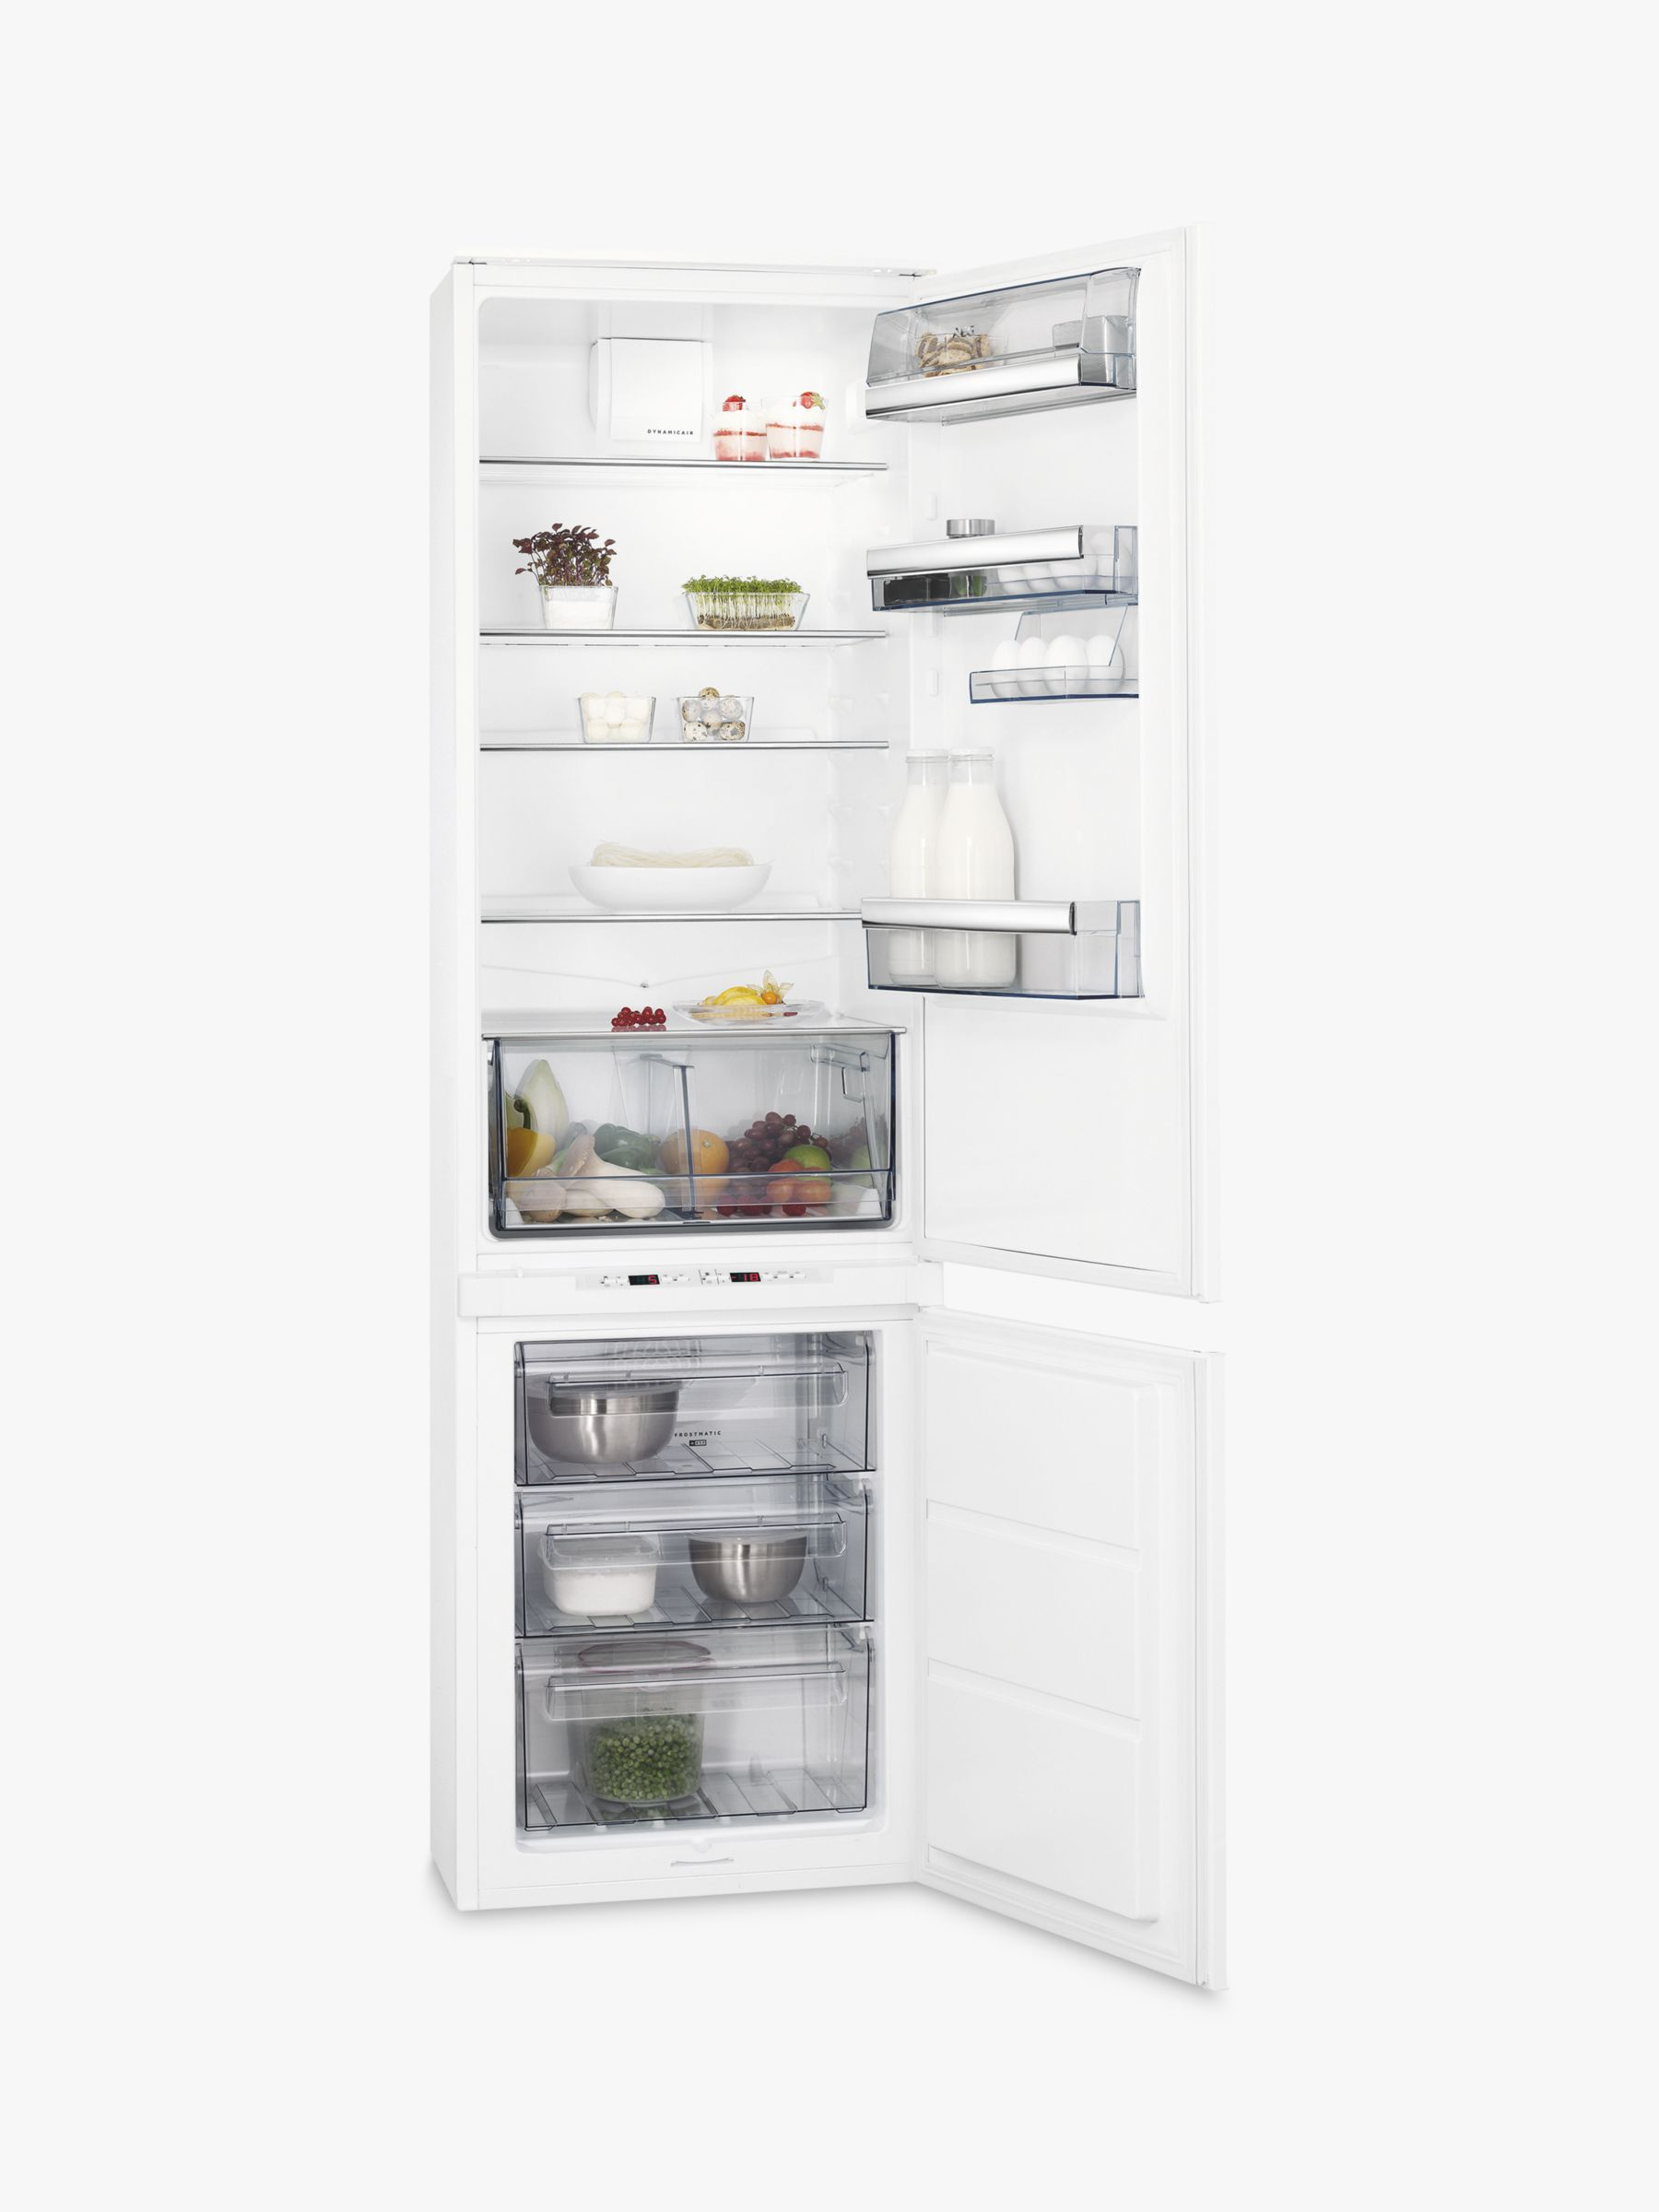 AEG AEG SCE8191VTS Integrated Fridge Freezer, A+ Energy Rating, 54cm Wide, White